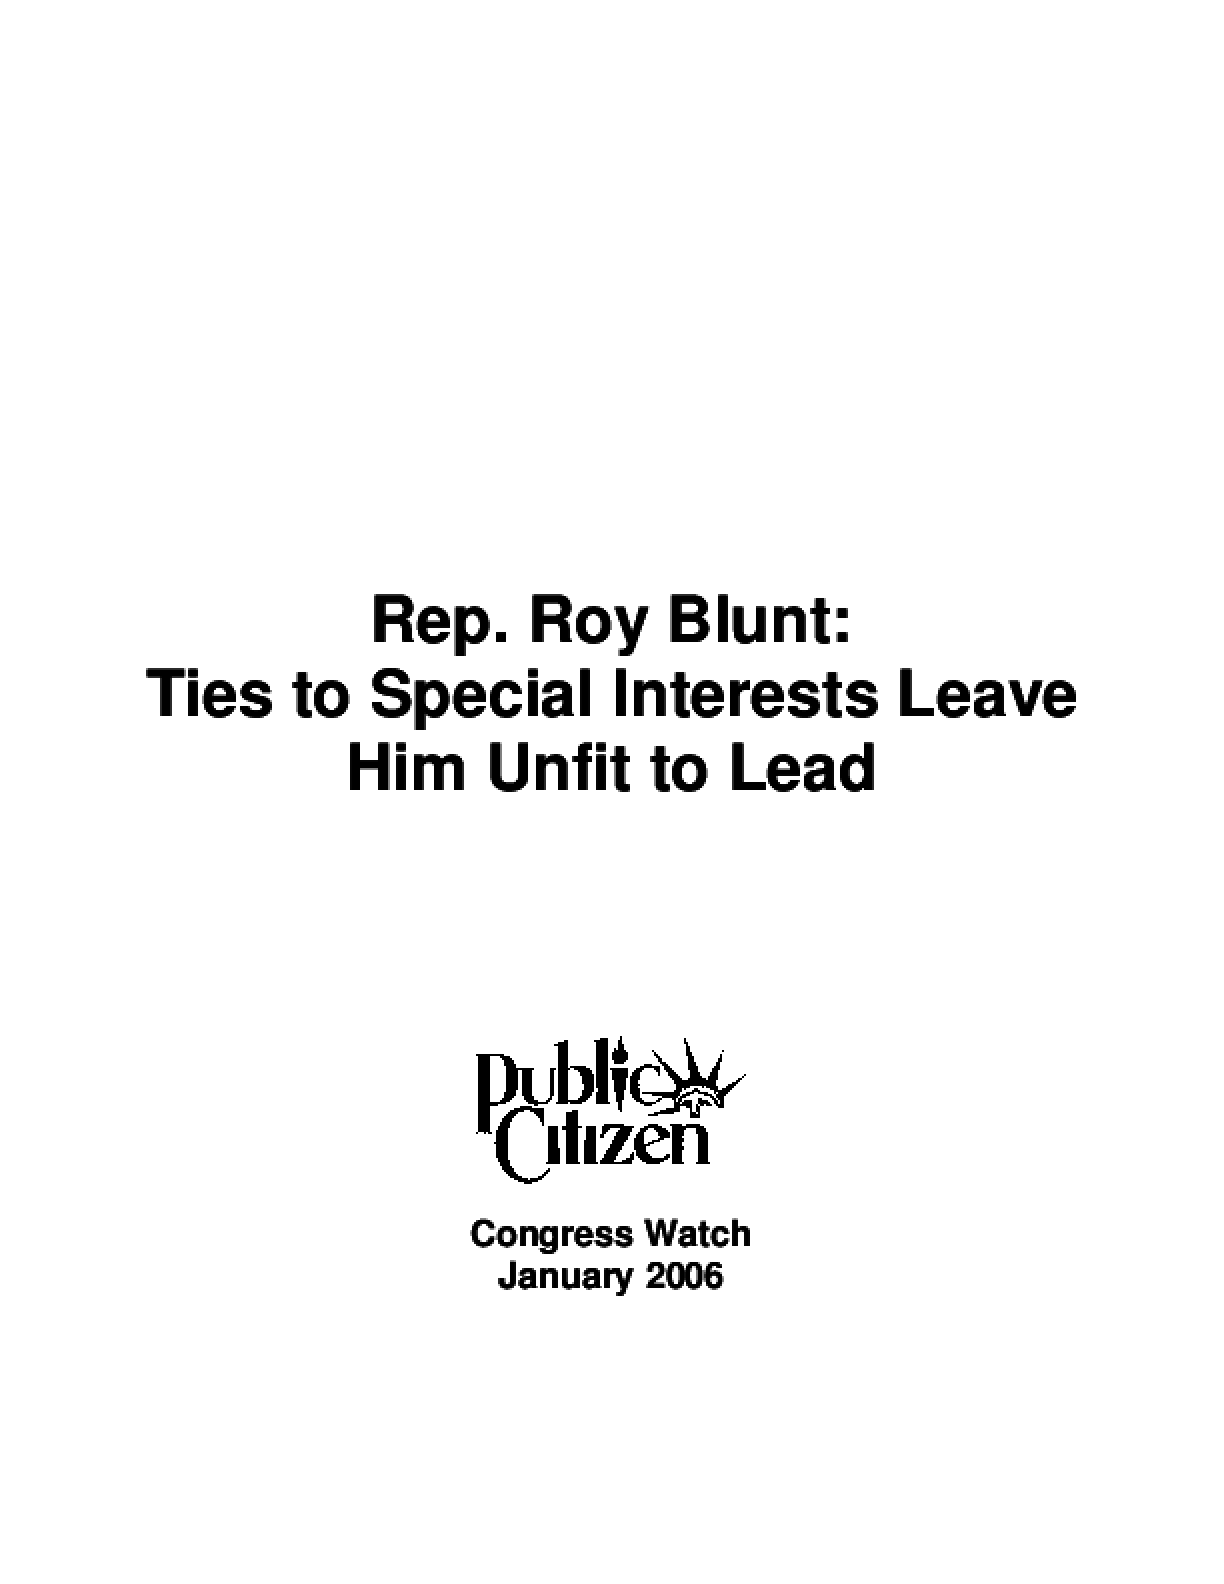 Rep. Roy Blunt: Unfit to Lead